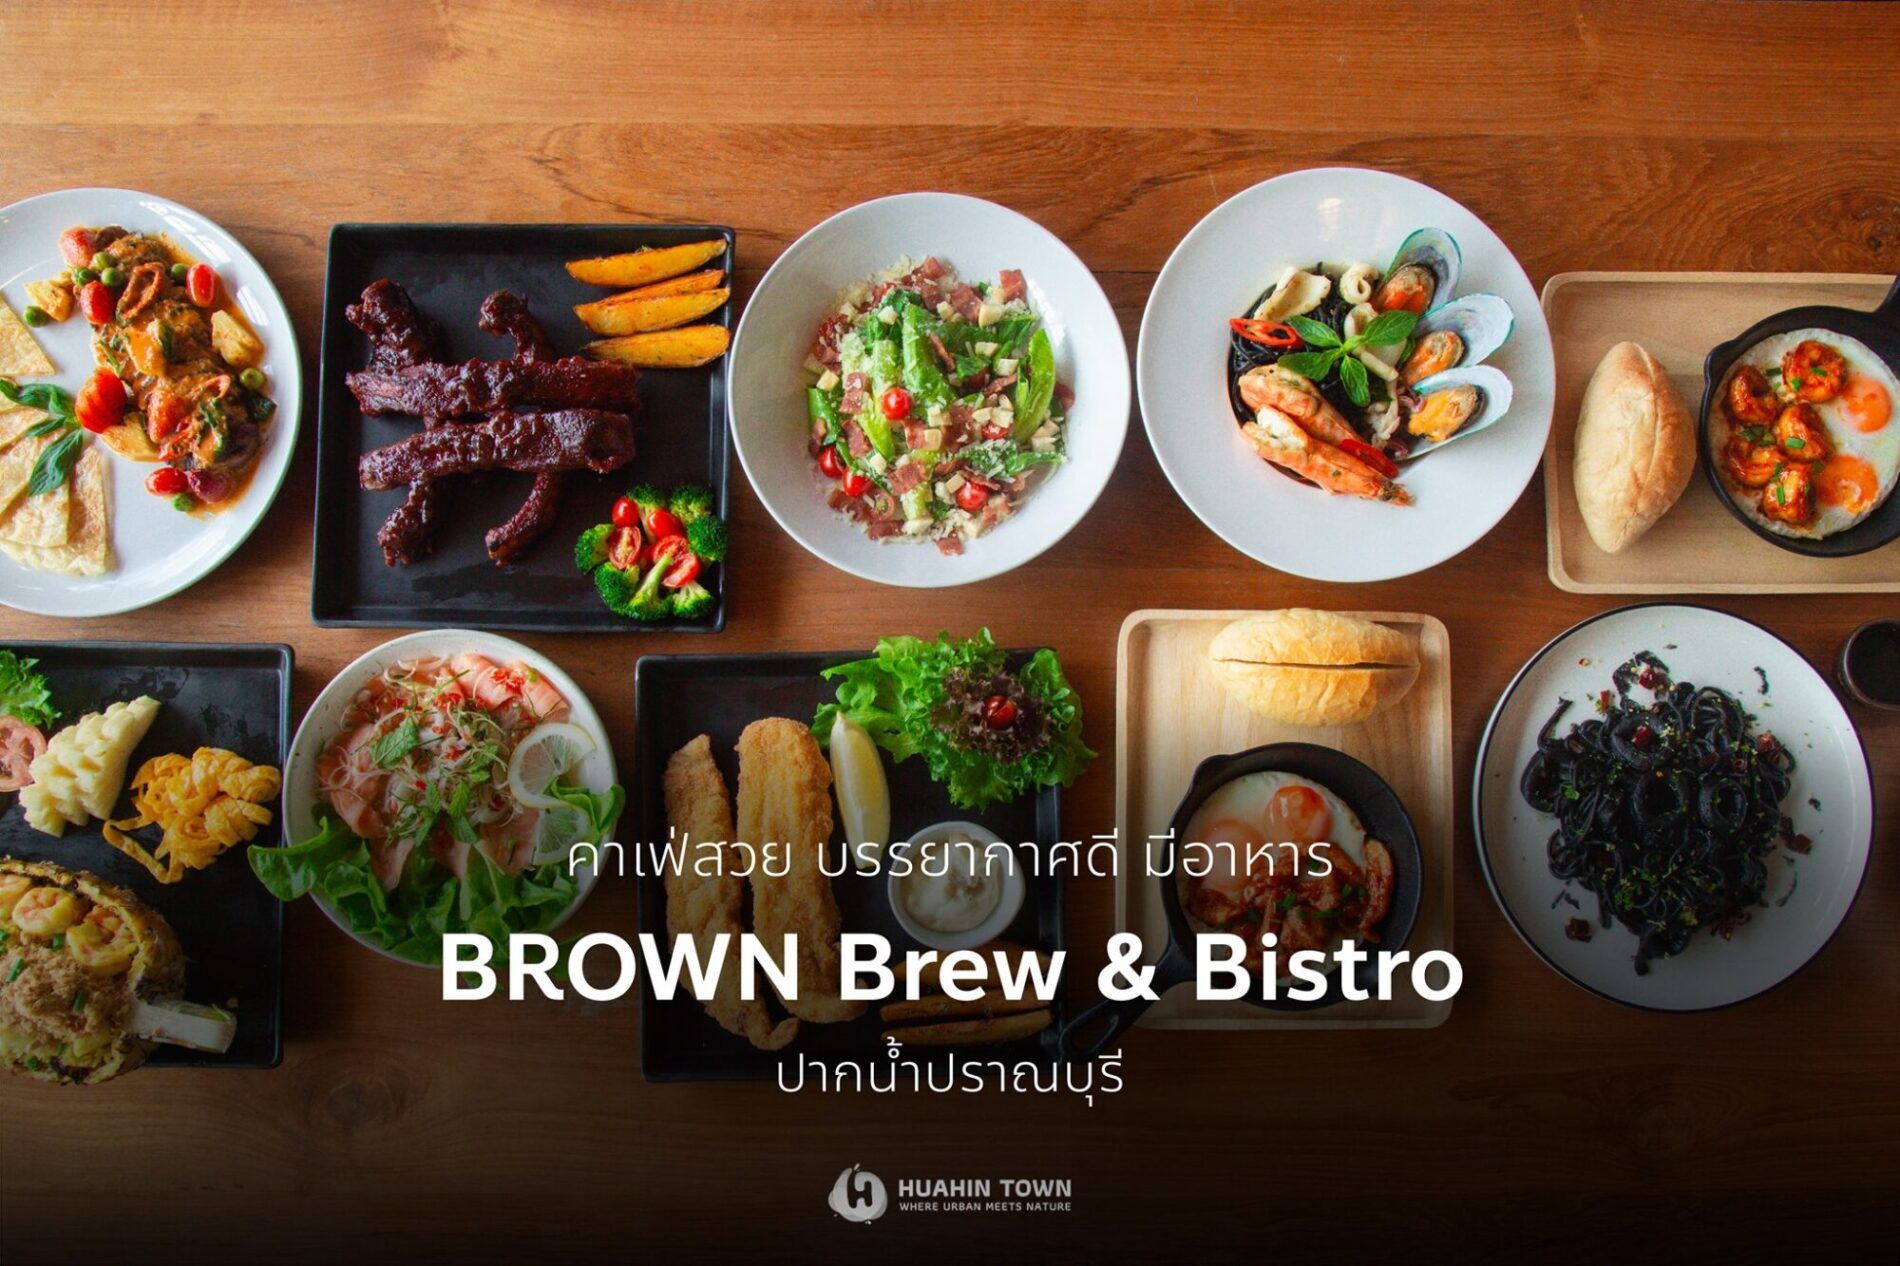 BROWN Brew & Bistro